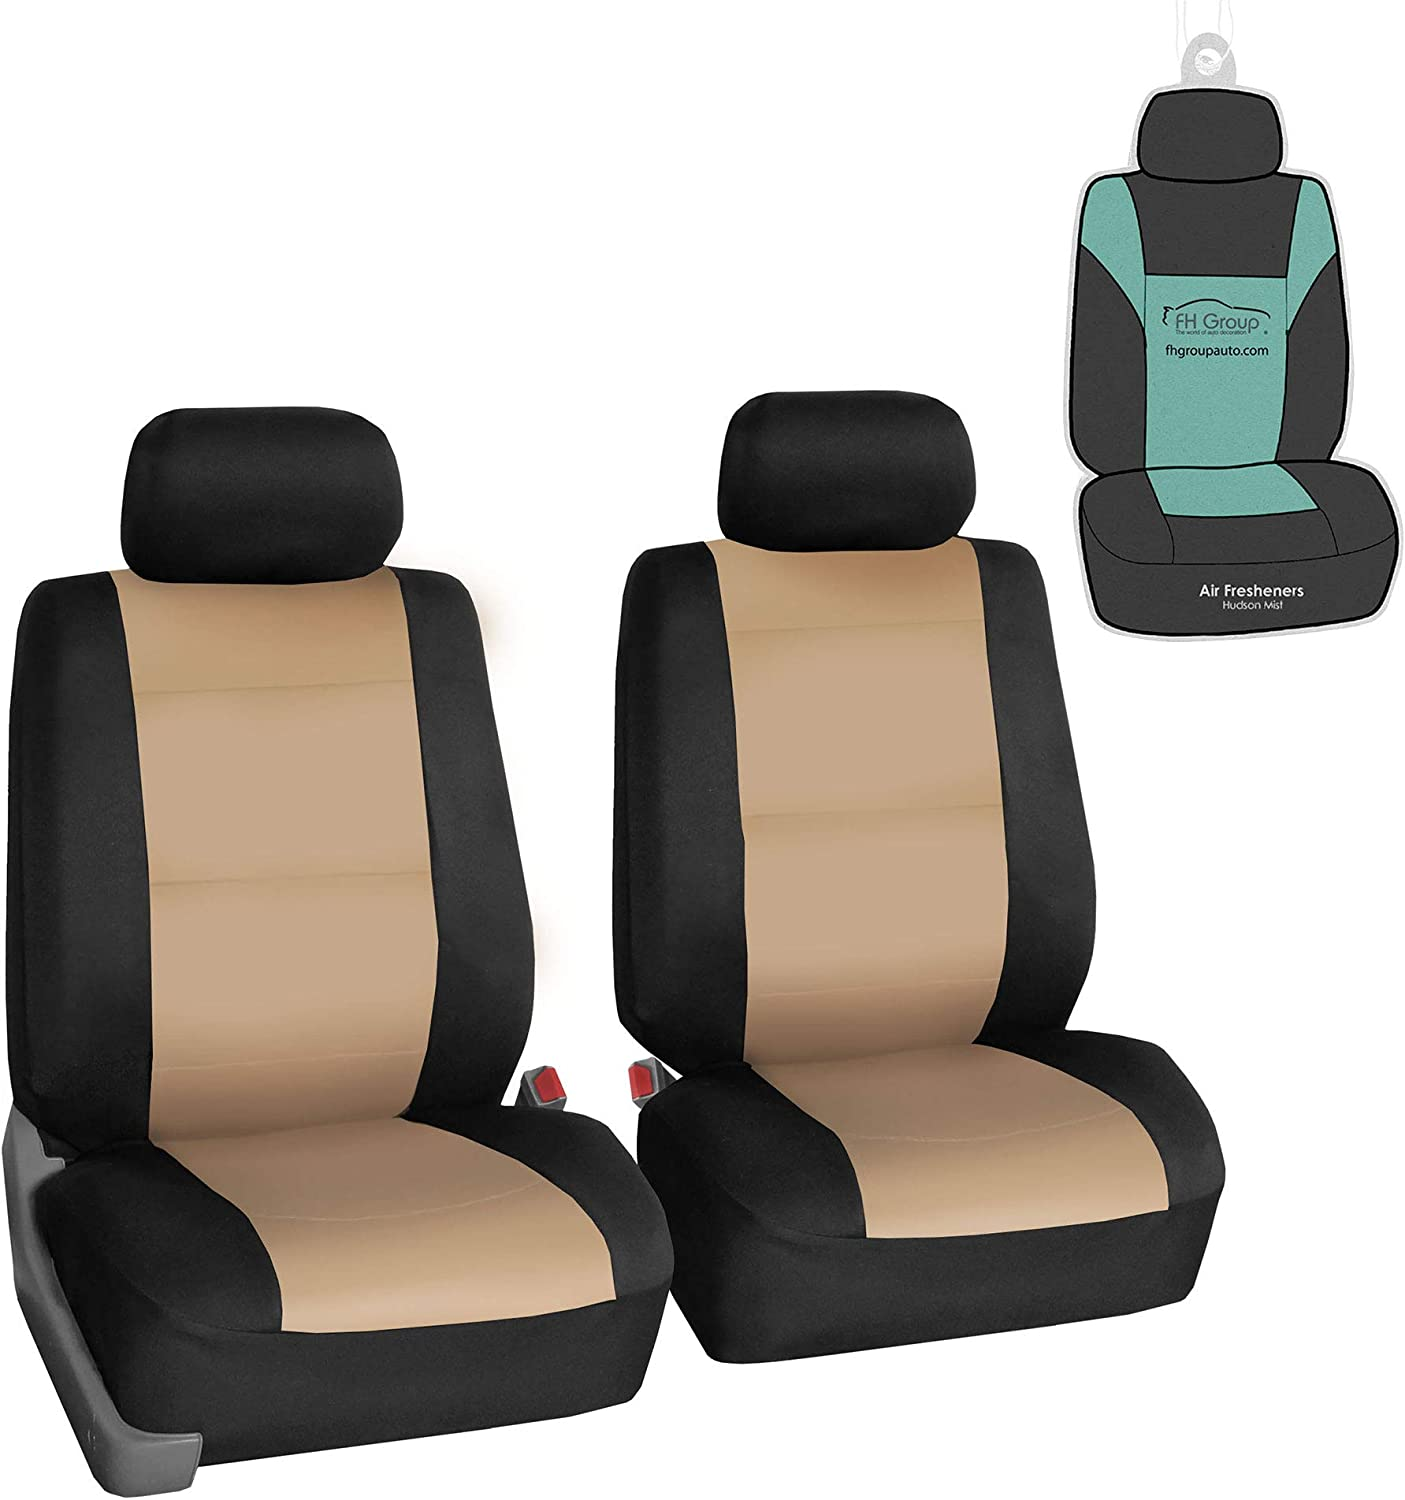 FH Group FB083102 Neoprene Seat Covers (Beige) Front Set with Gift – Universal Fit for Cars Trucks and SUVs